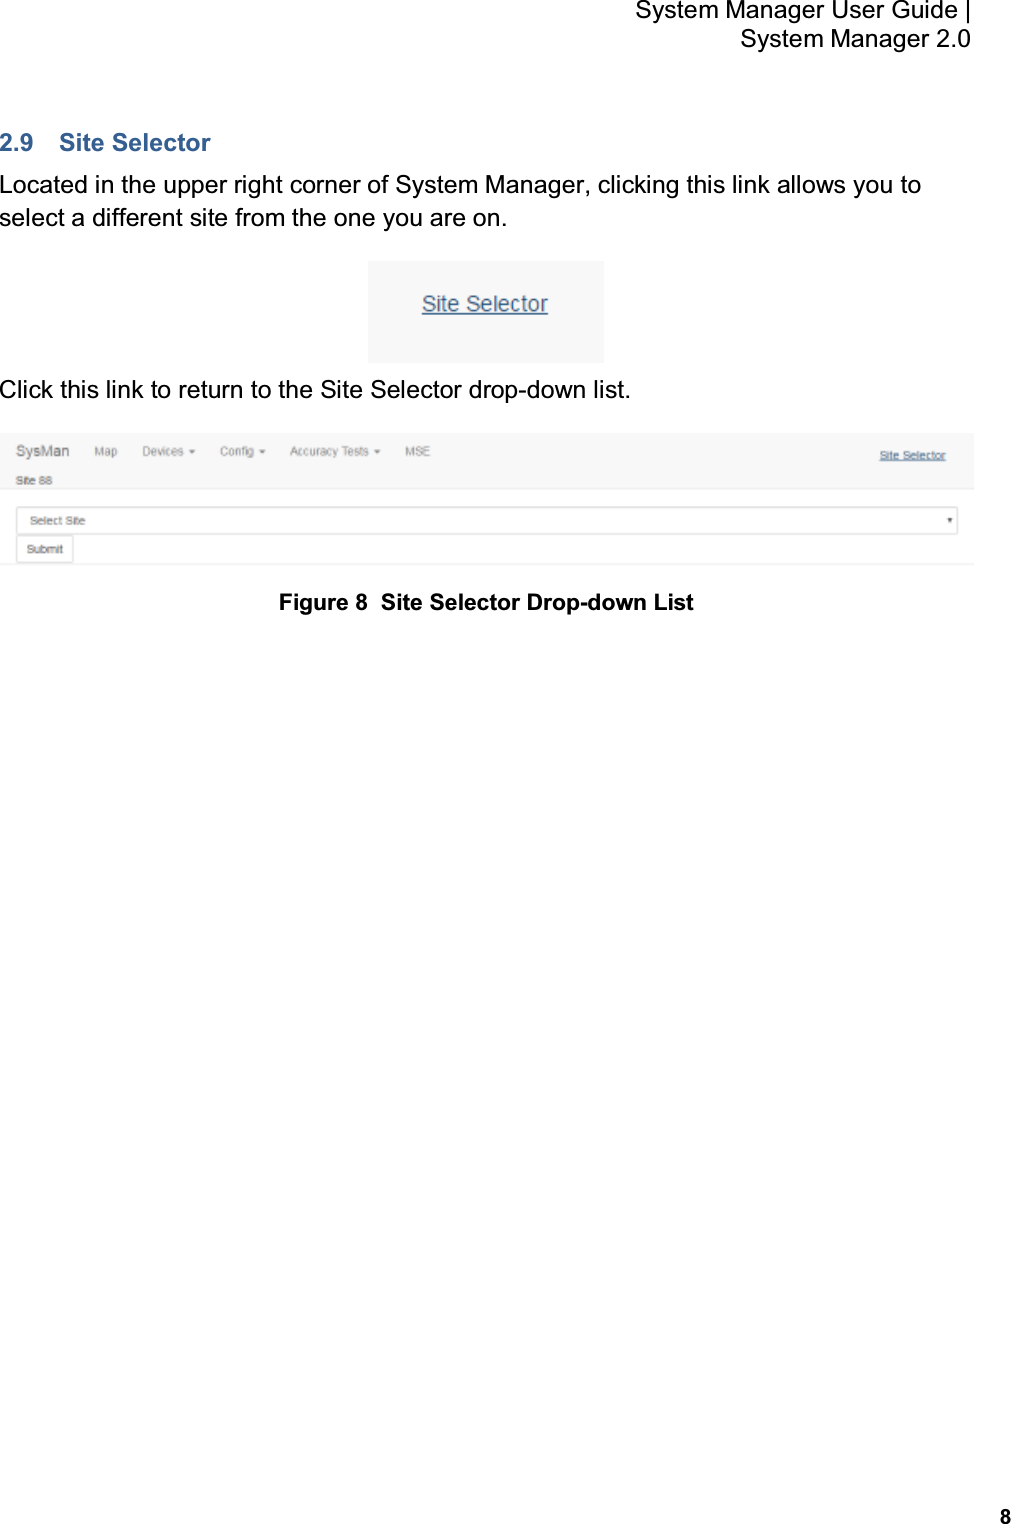 8 System Manager User Guide    System Manager 2.0 2.9  Site Selector Located in the upper right corner of System Manager, clicking this link allows you to select a different site from the one you are on.    Click this link to return to the Site Selector drop-down list.  Figure 8  Site Selector Drop-down List